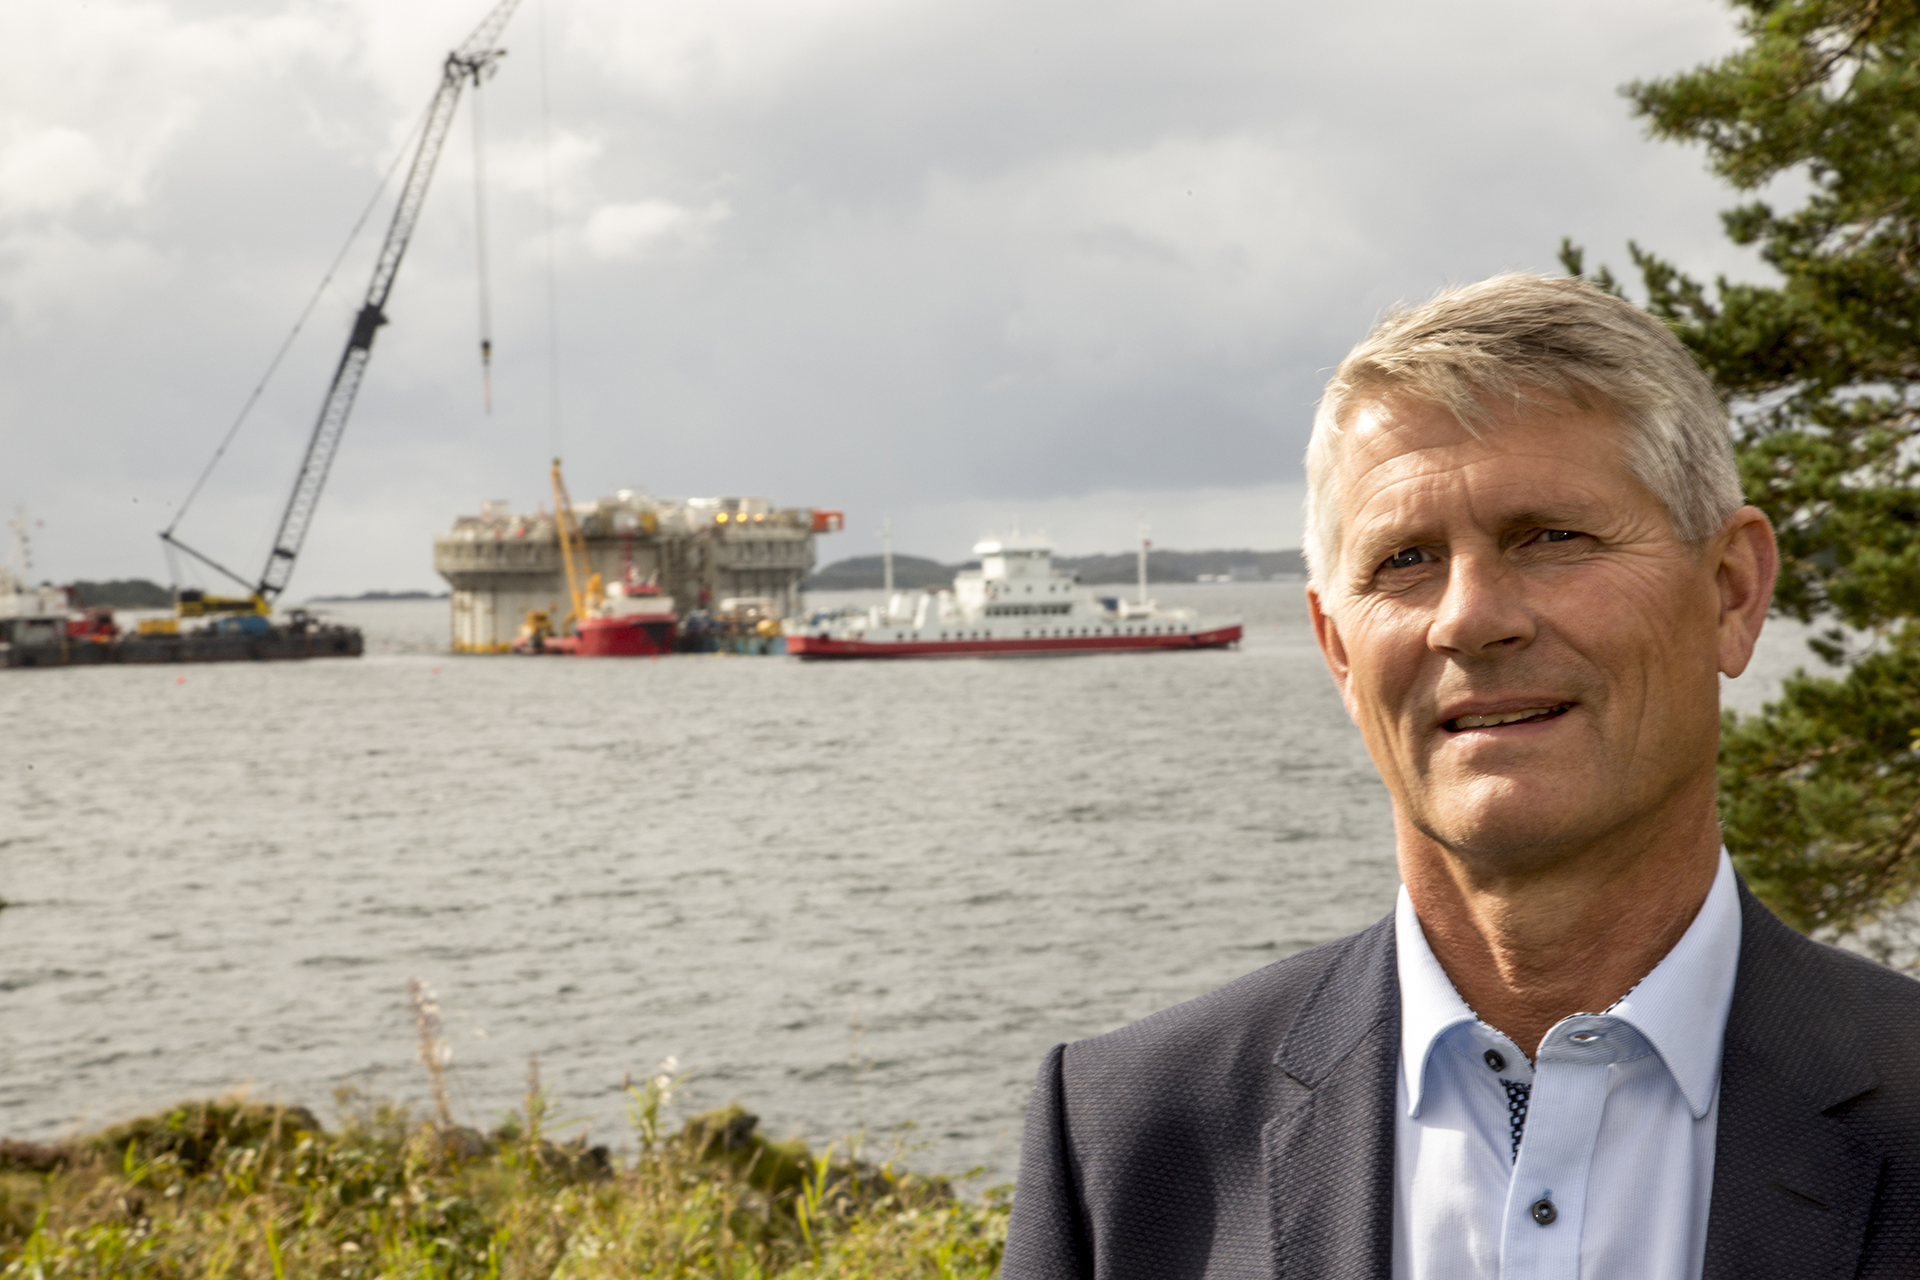 Biggest job. Torolf Christensen is Equinor's project director for the Aasta Hansteen platform. Viewed overall, this is the biggest job he has tackled in his career. He reports heavy pressure from outside interests, particularly in northern Norway.